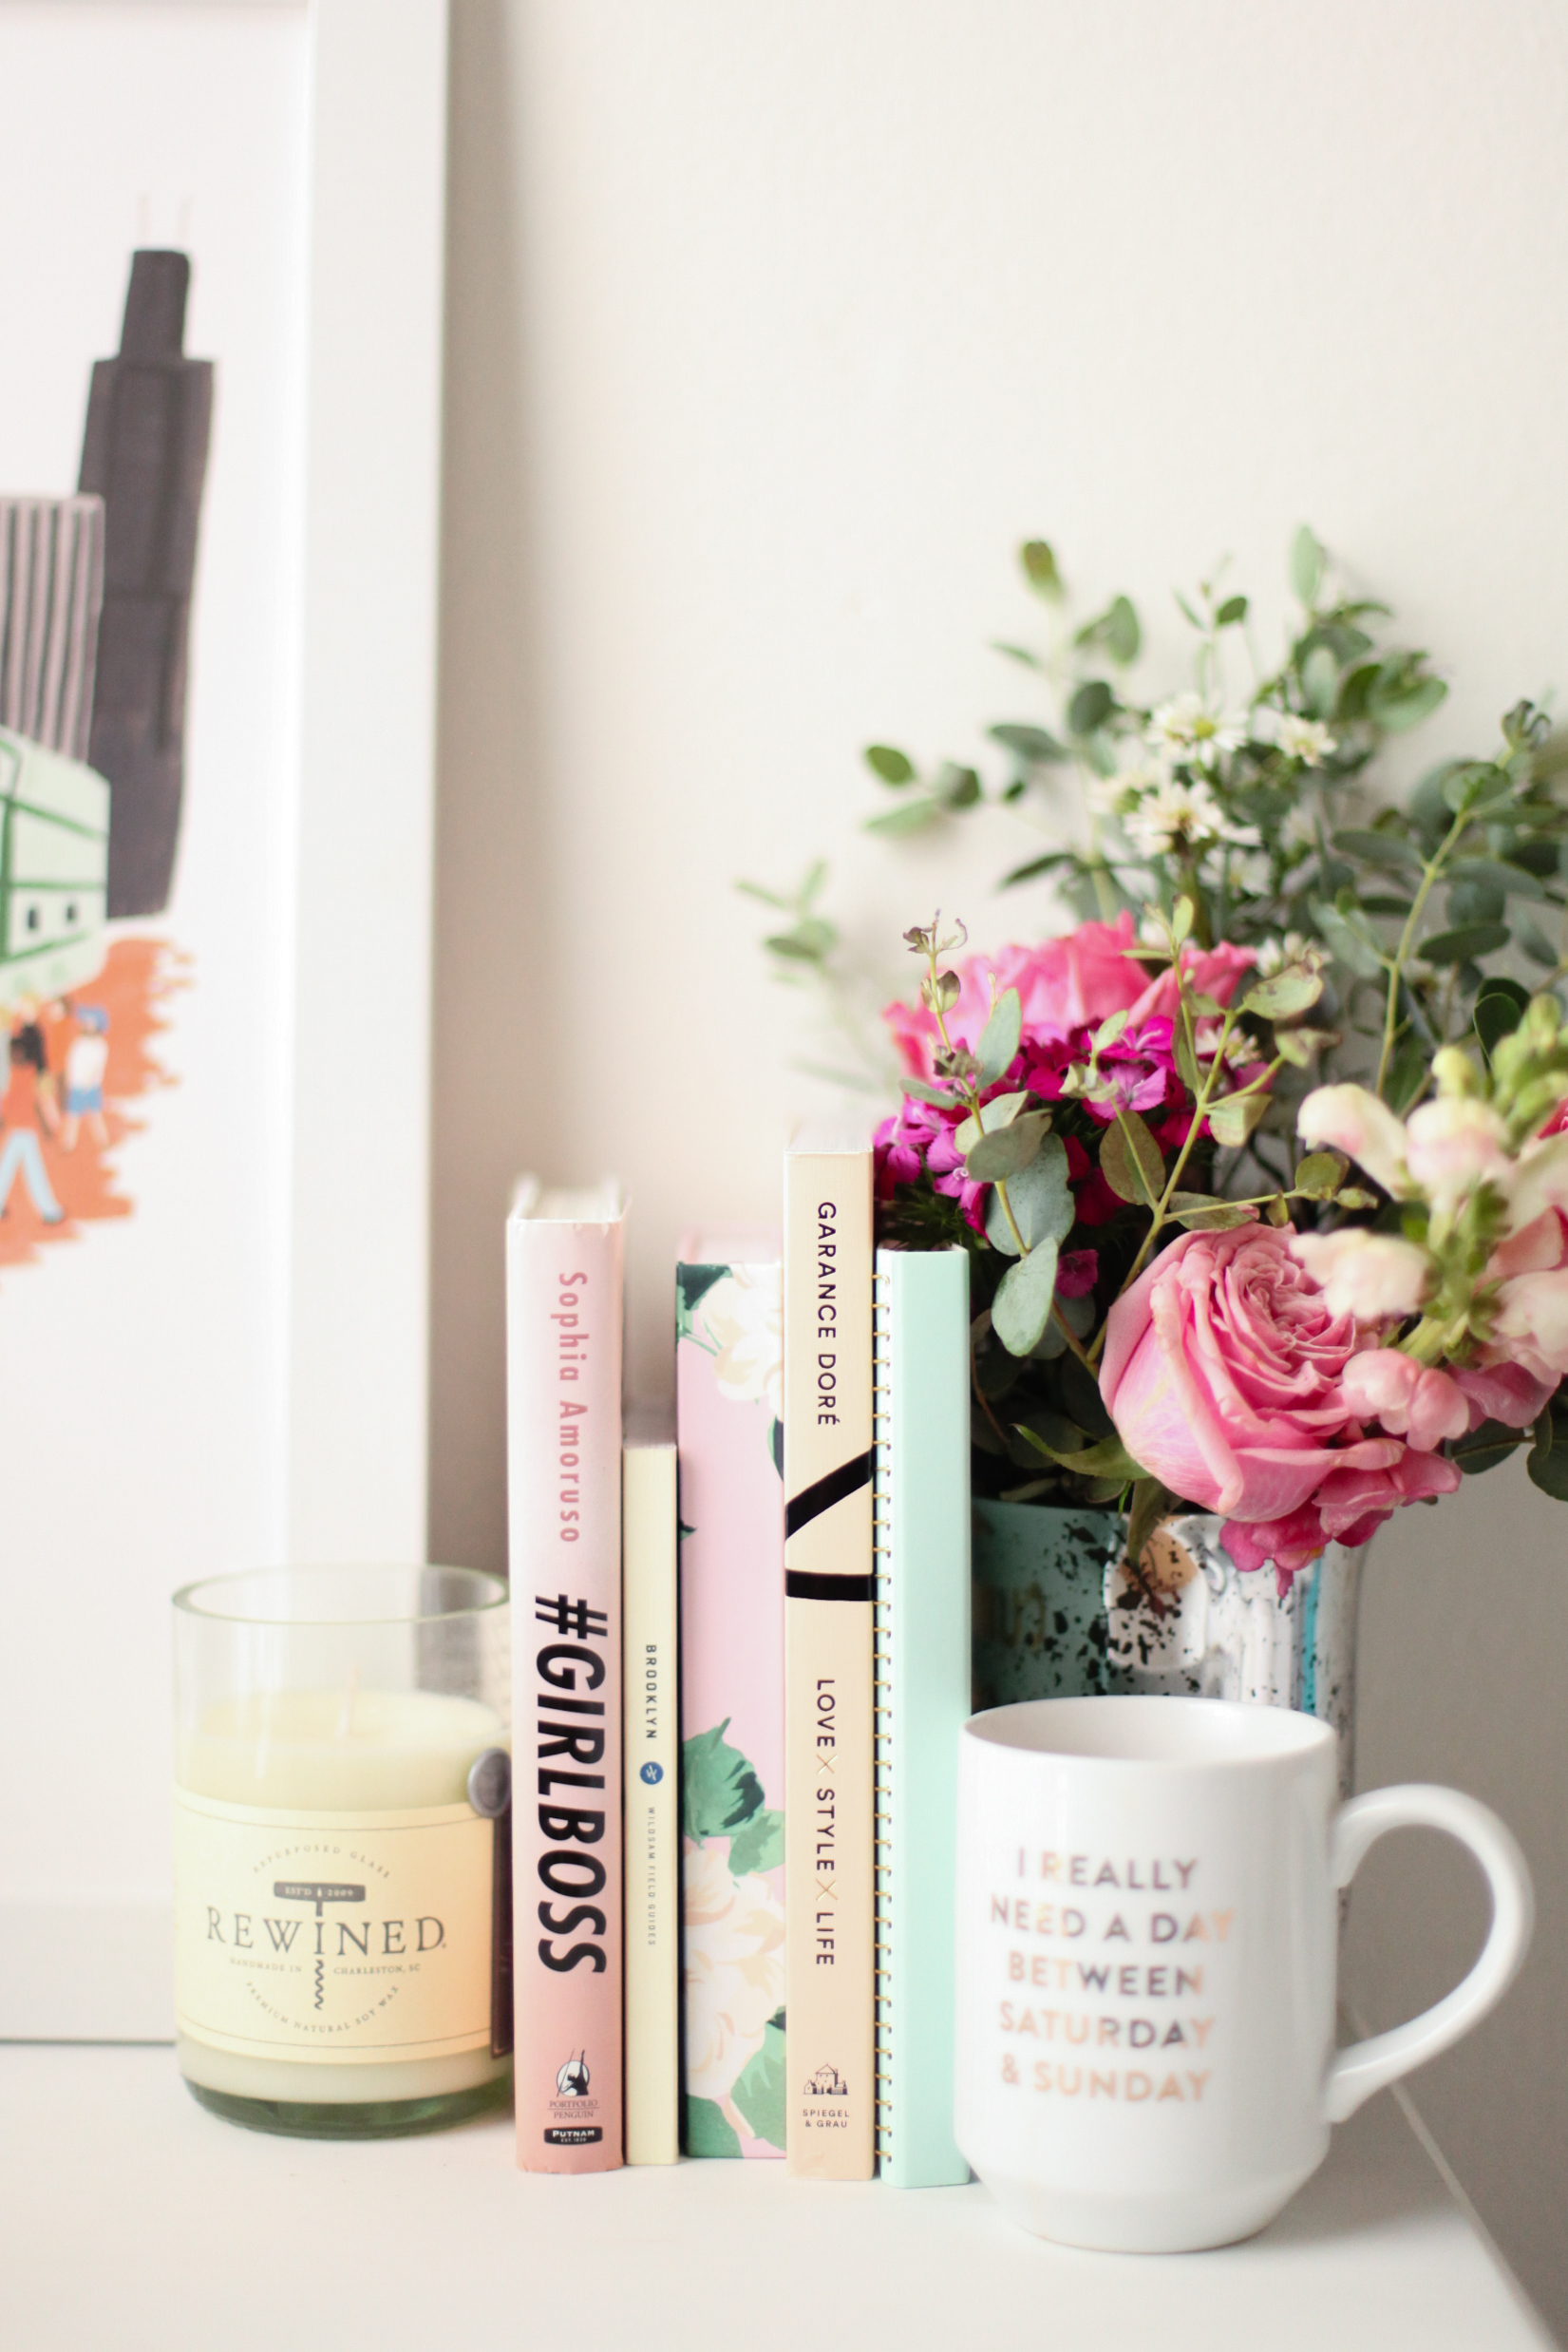 Easy tips to make your desk look gooooooood.